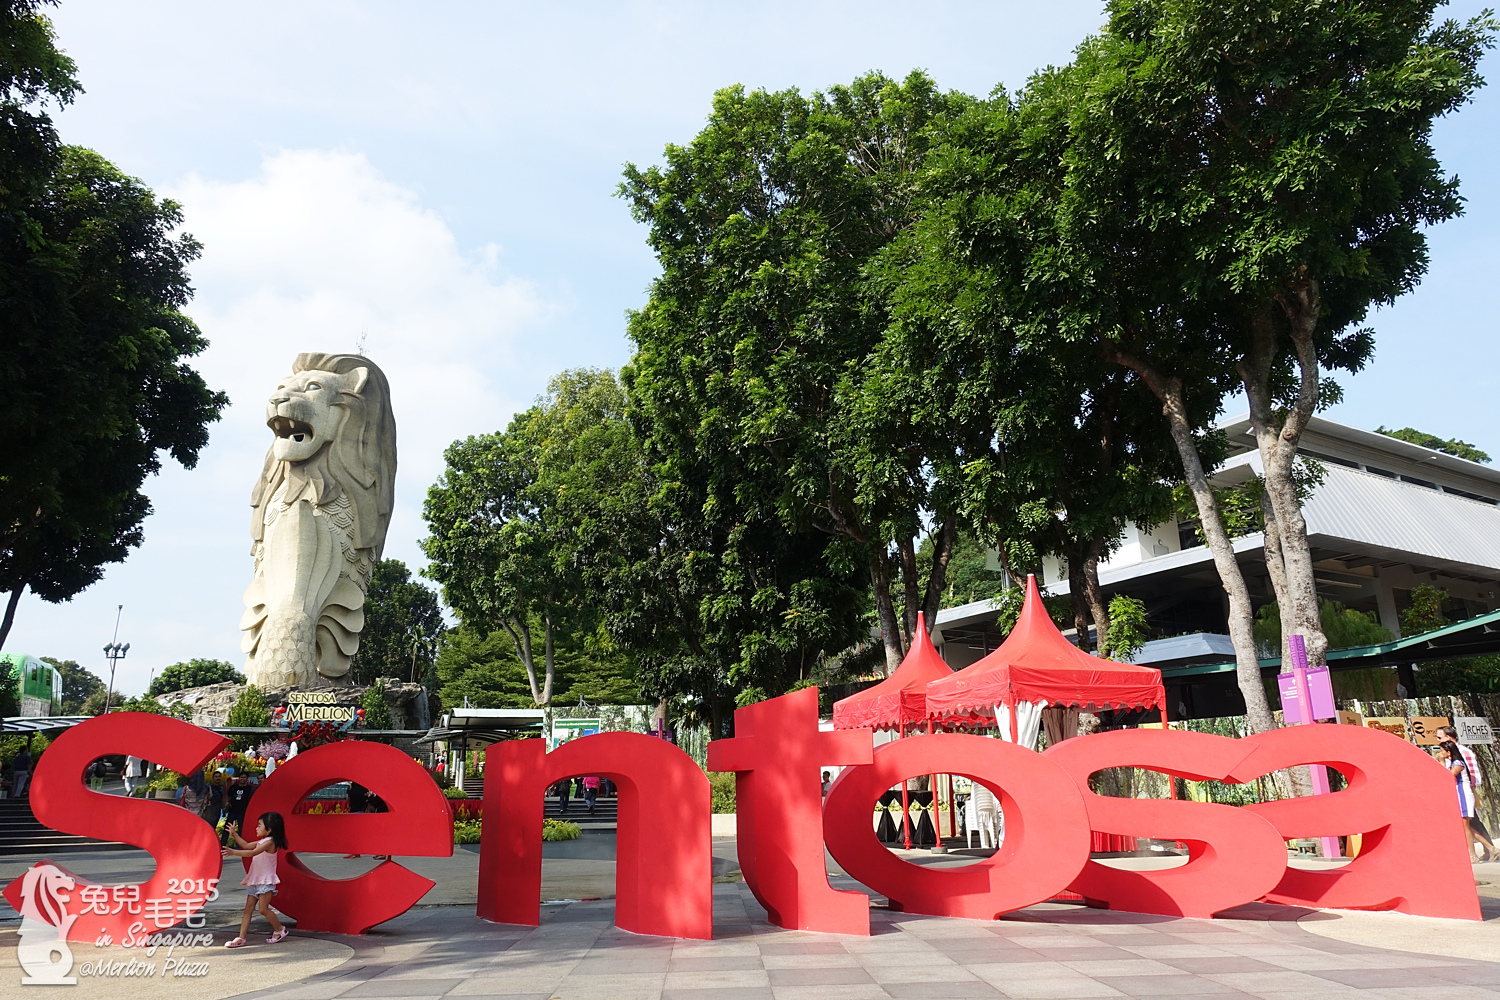 0215-Merlion Plaza-05.jpg